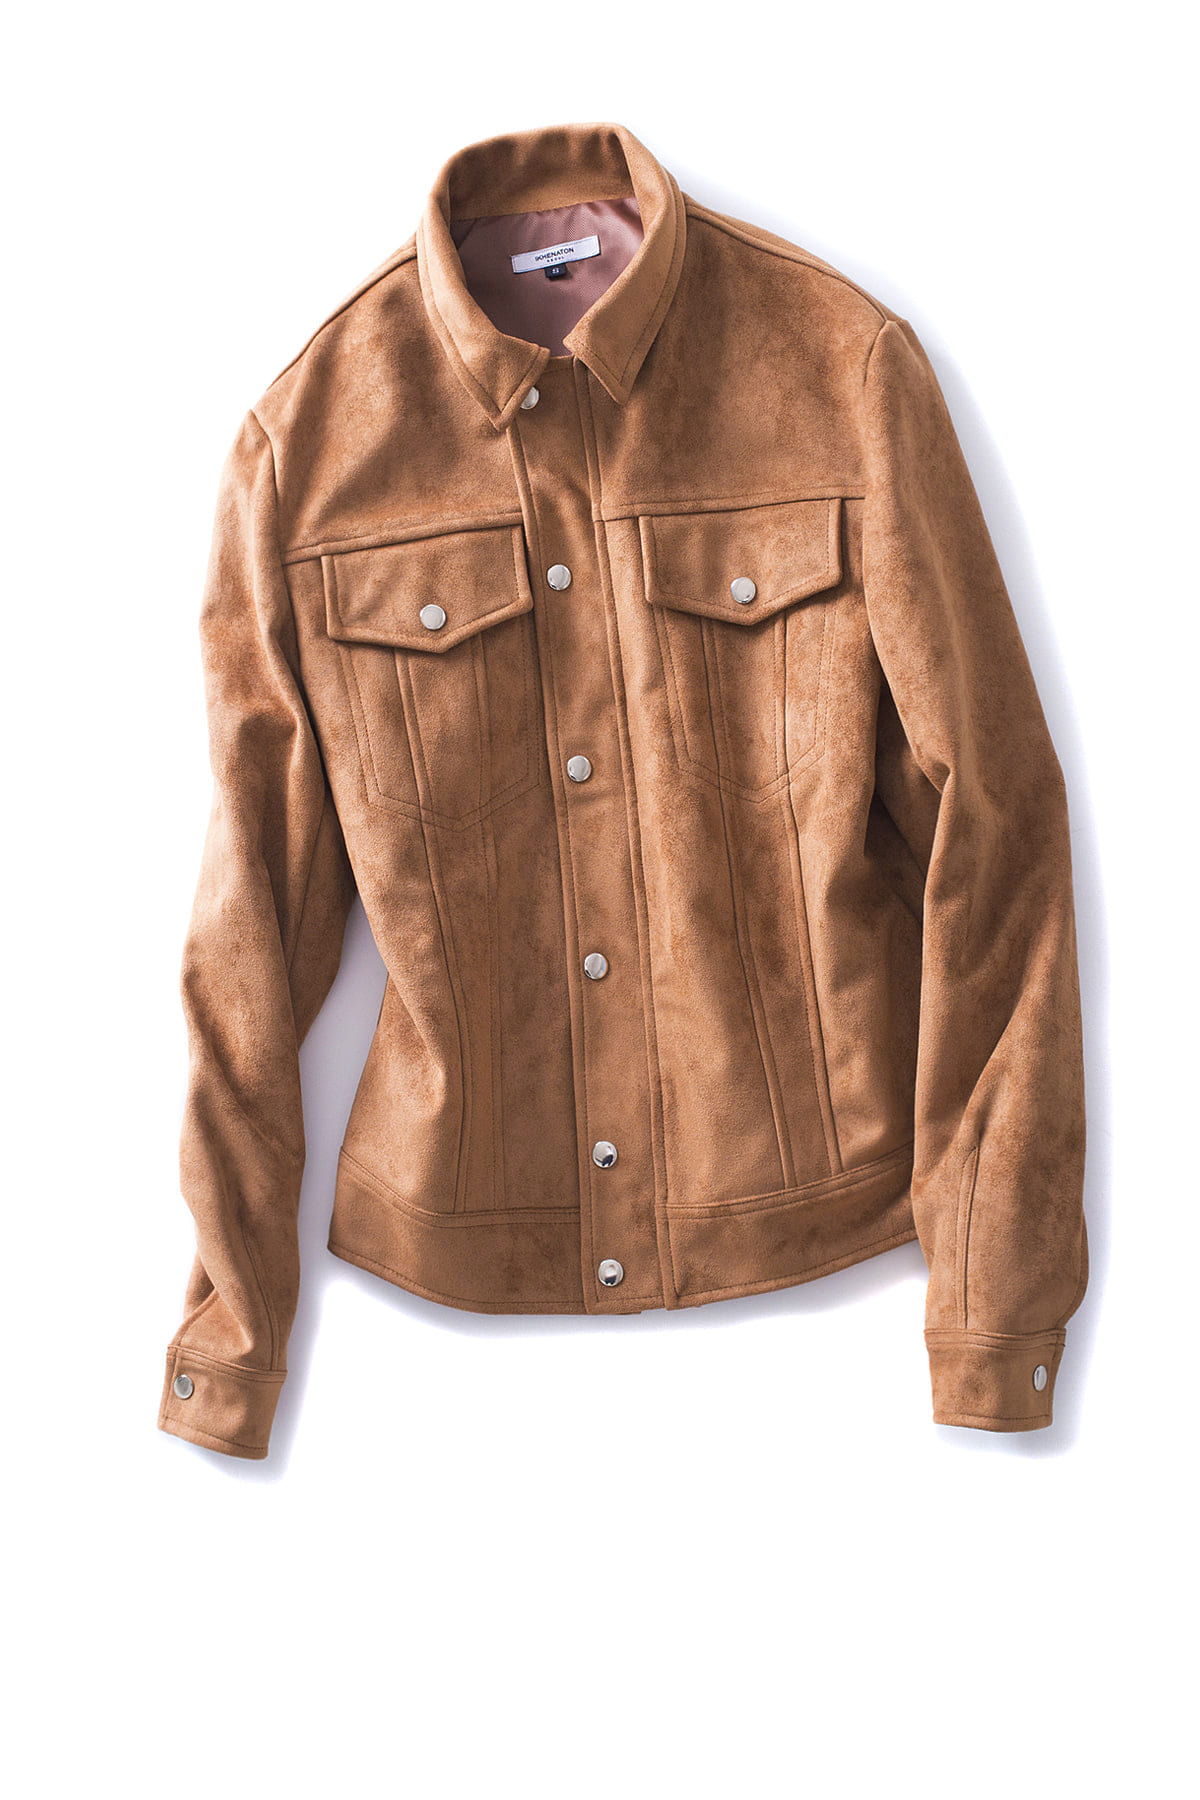 IKHENATON : Suede Jacket (Brown)